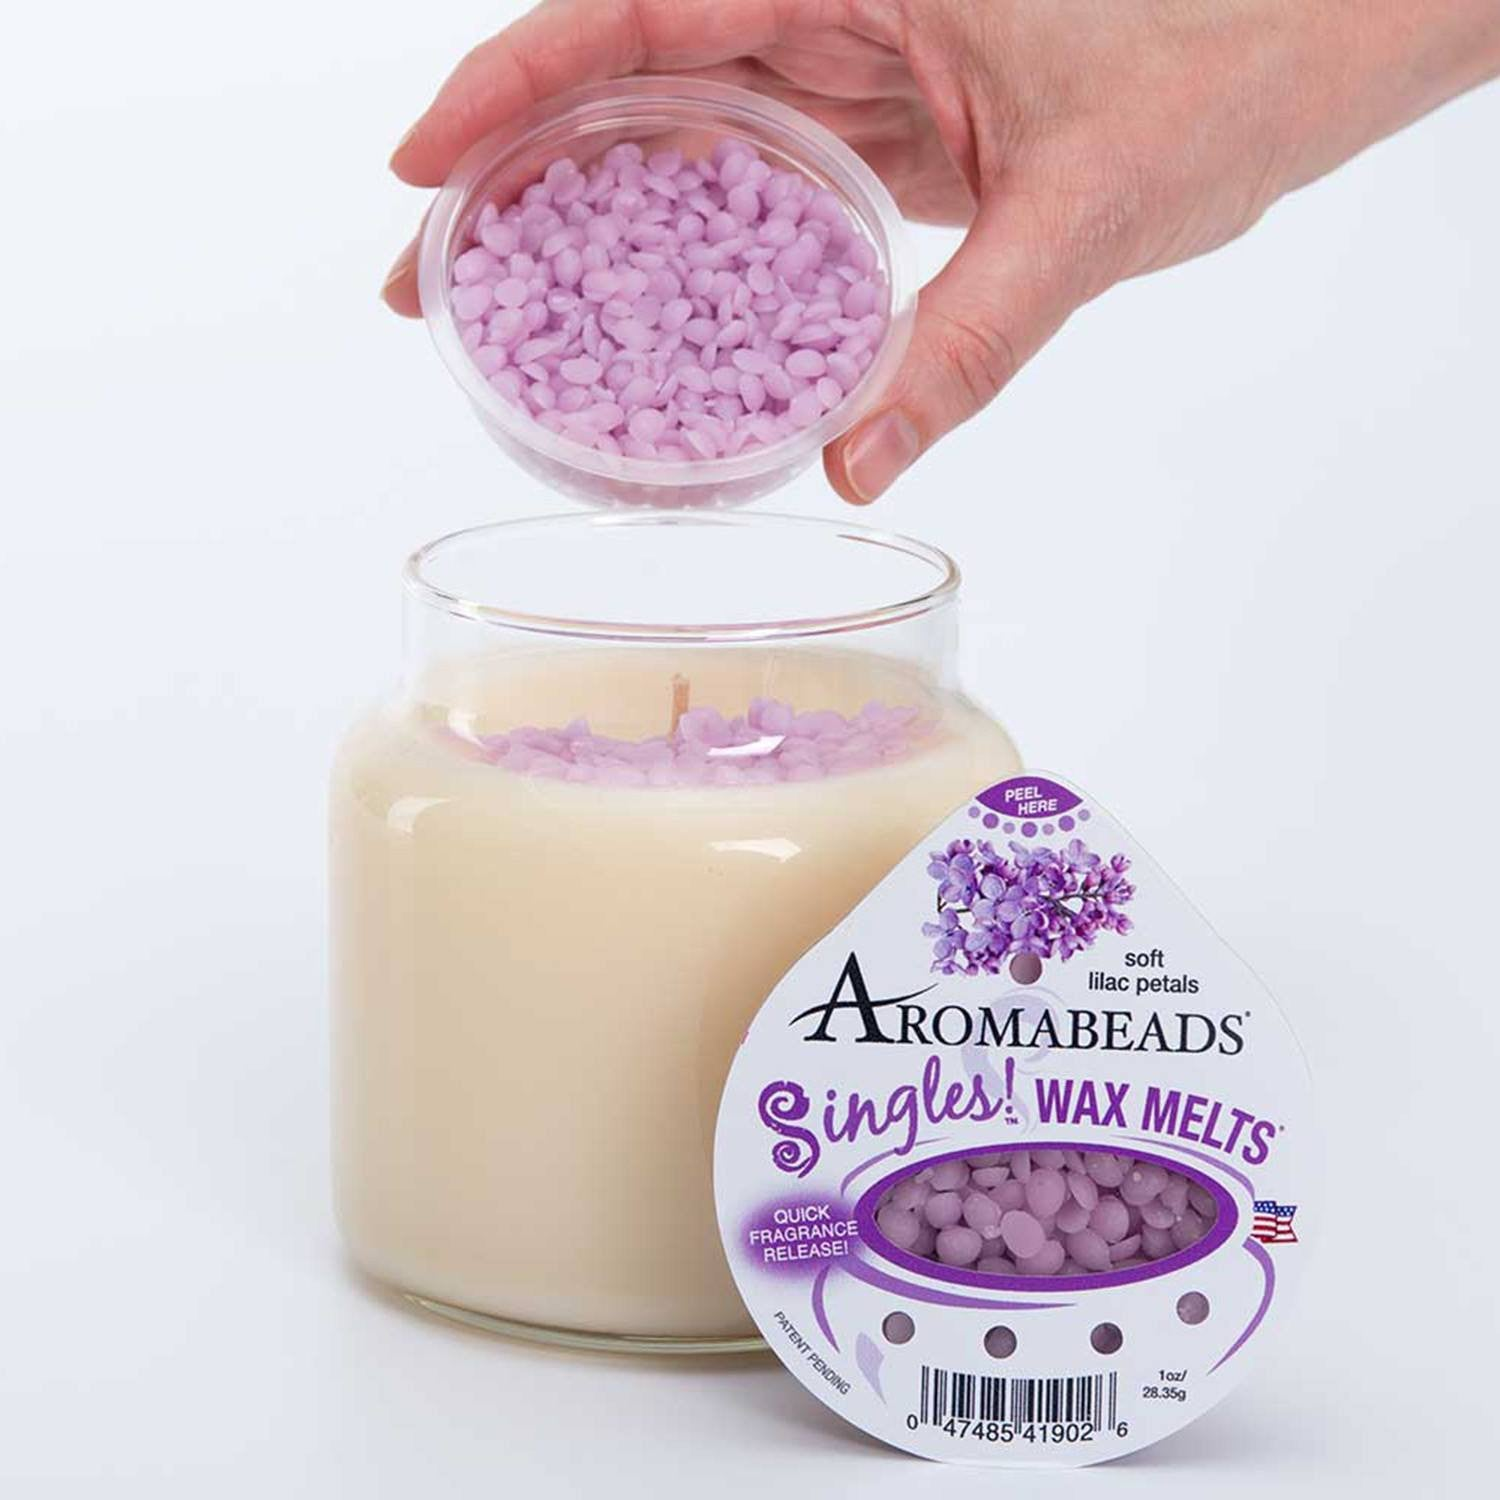 Aromabeads Singles Ivory Electric Melt Warmer Melt Warmer Candlemart.com $ 29.99